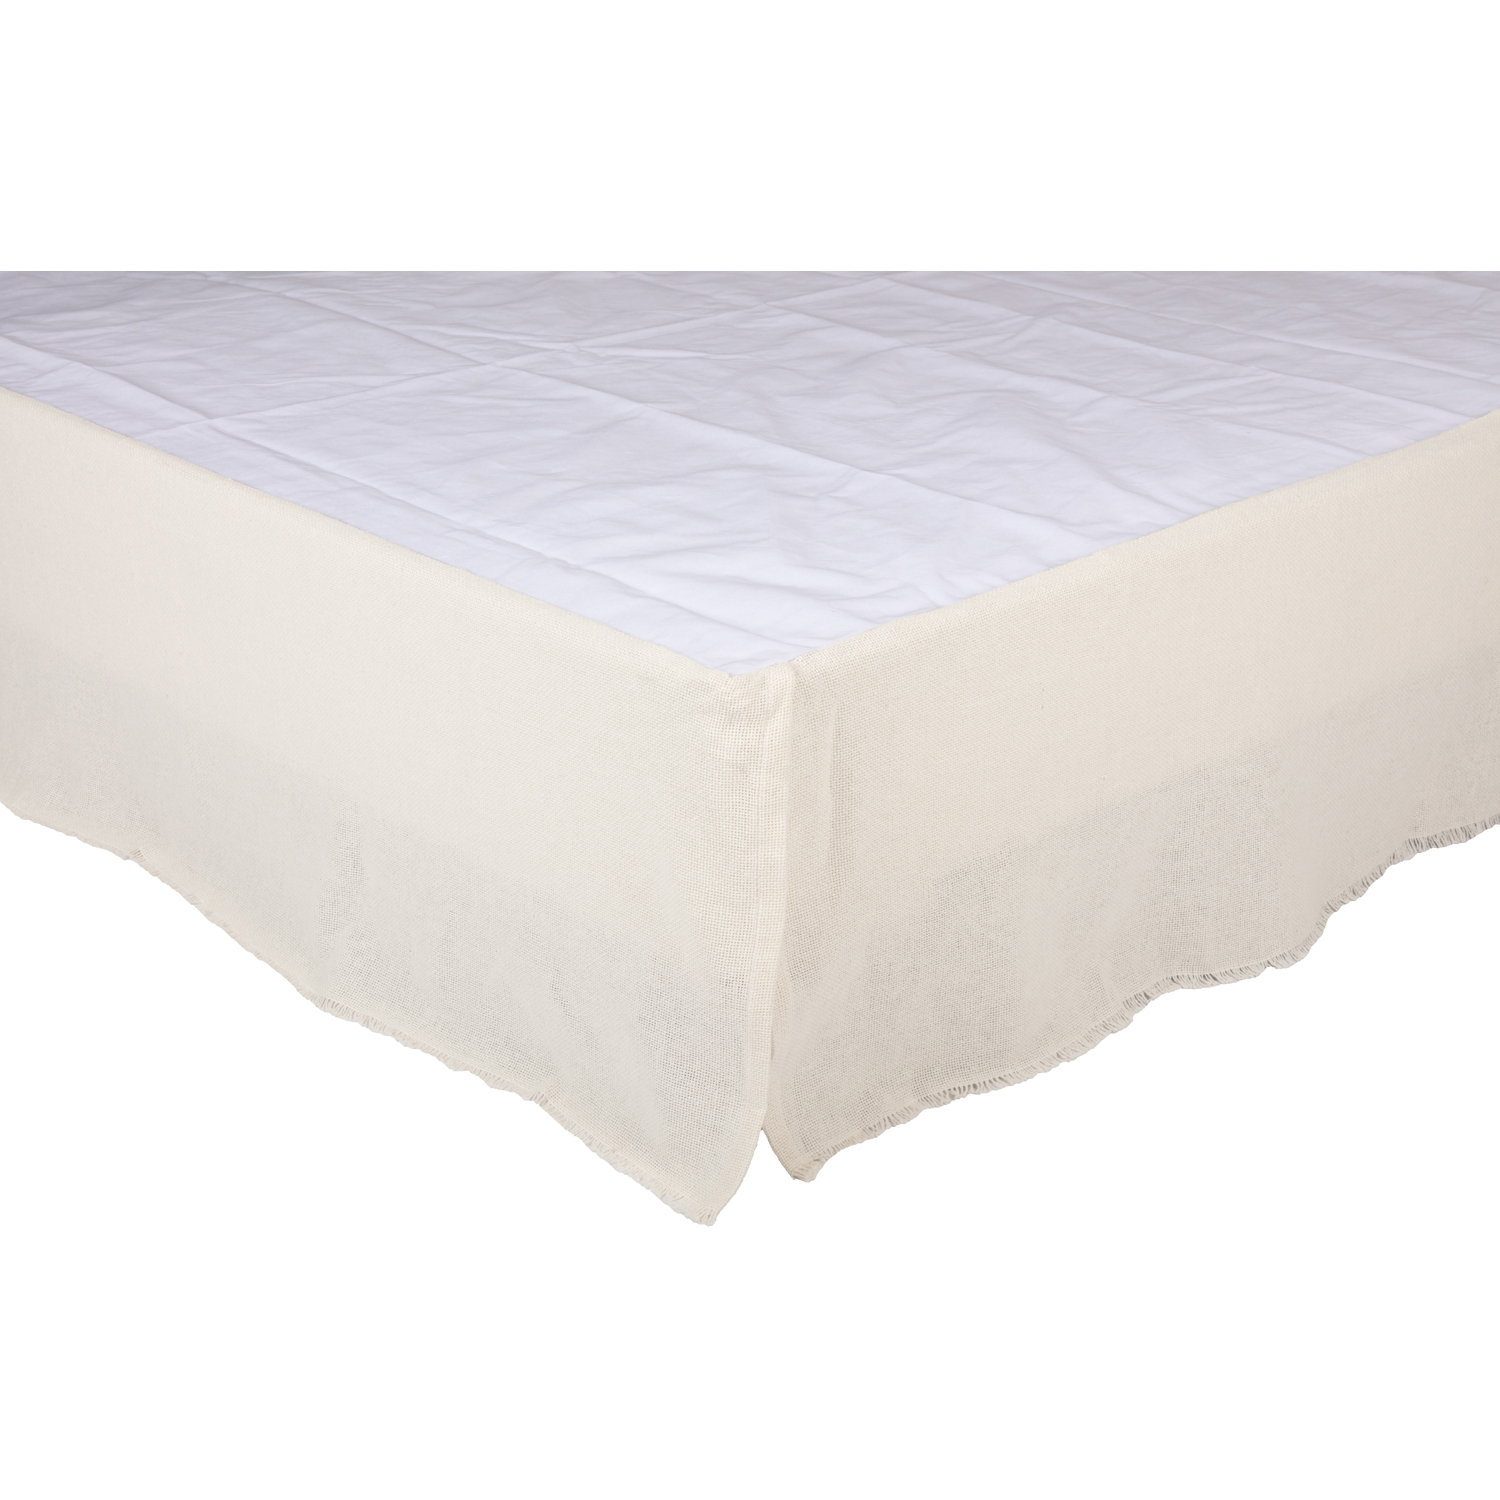 Burlap Antique White Fringed Twin Bed Skirt 39x76x16